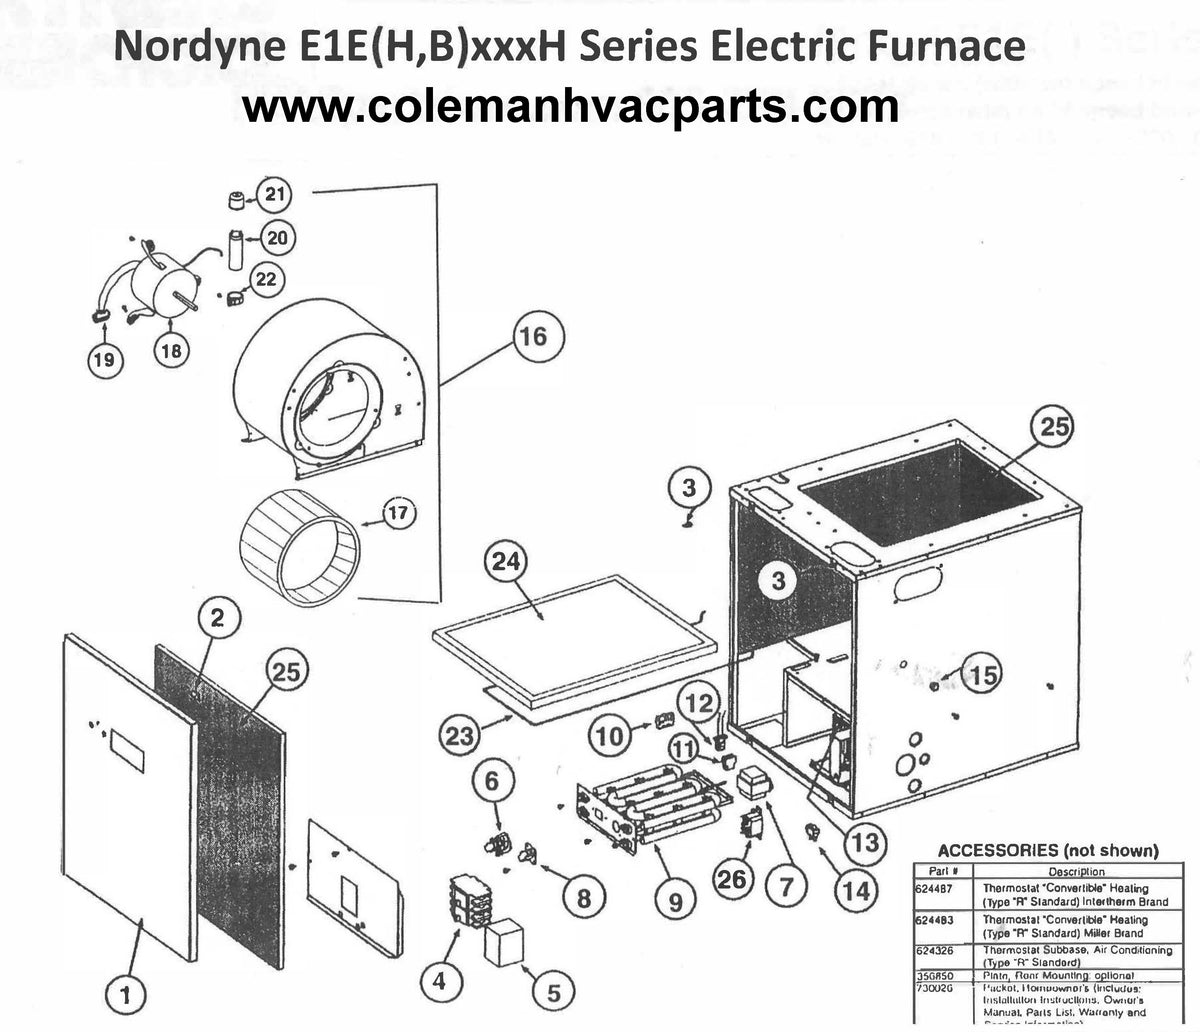 E1EH015H Nordyne Electric Furnace Parts – HVACpartstore on